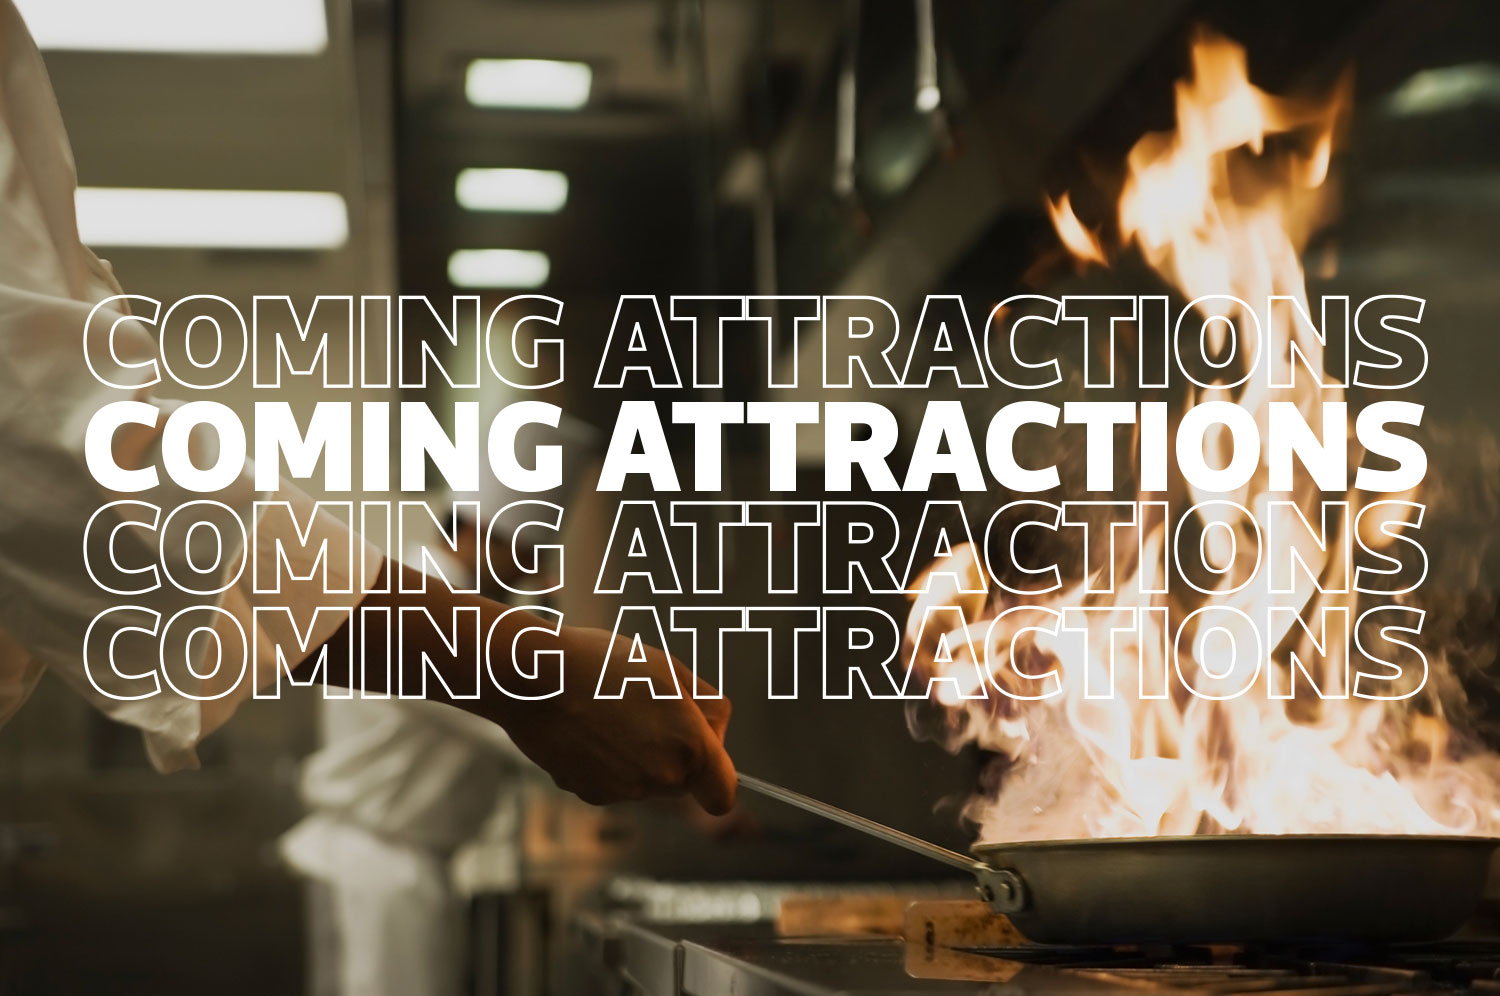 """Text reading """"coming attractions"""" is overlaid on a stock image of fire coming up from a frying pan. A chef's arm, clad in white, holds the handle of the pan."""